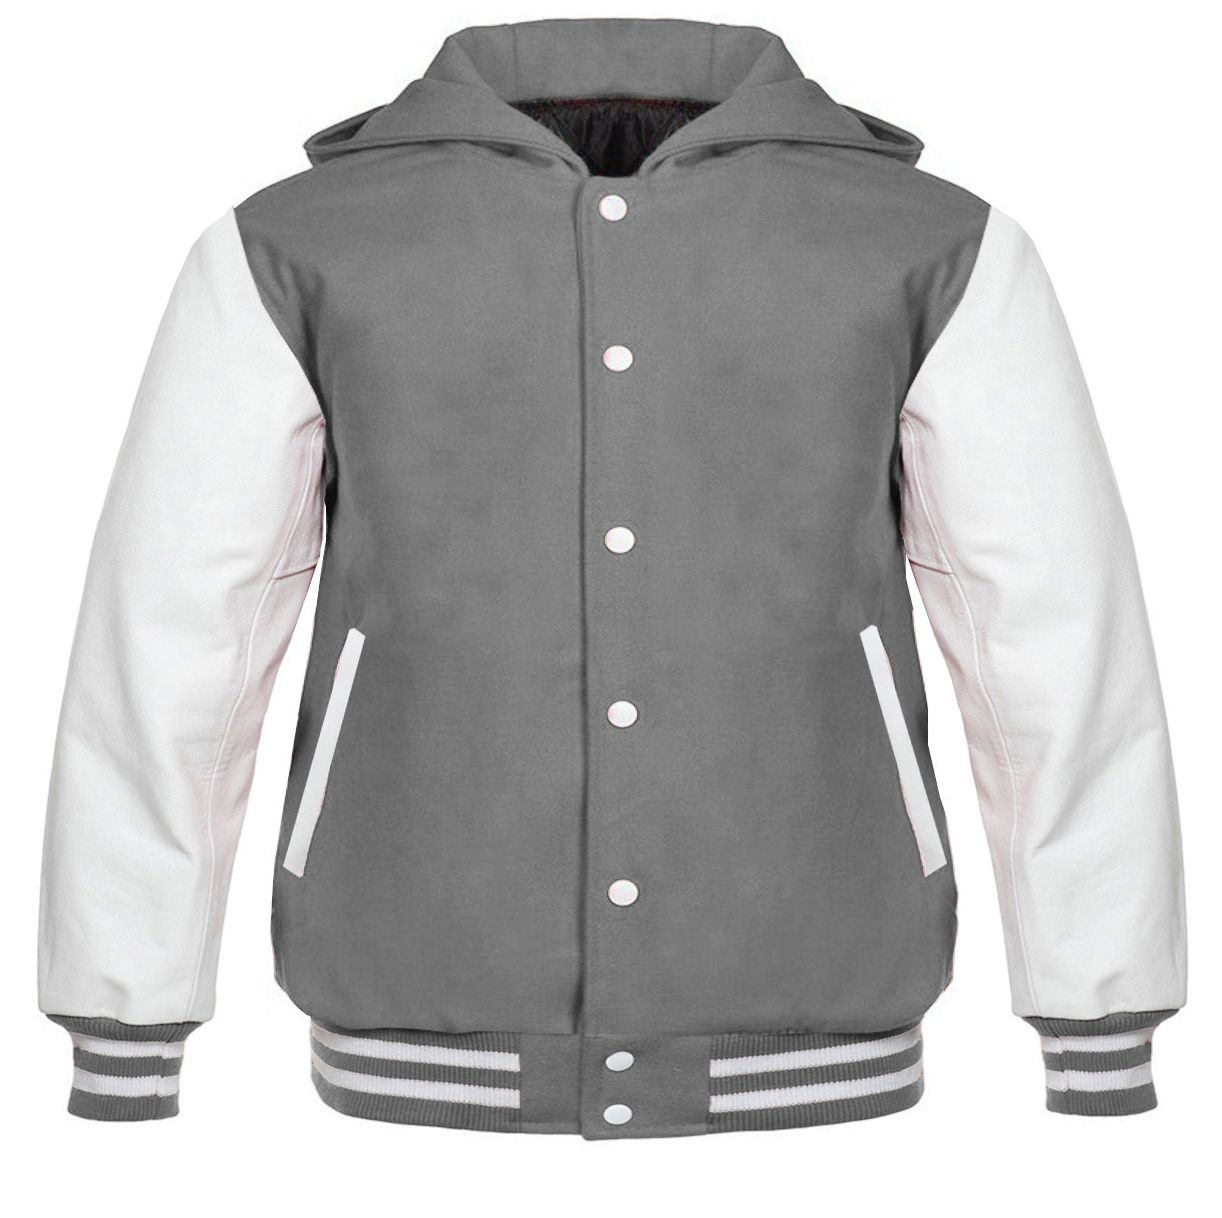 Details about Grey White Hoodie Varsity Letterman jacket